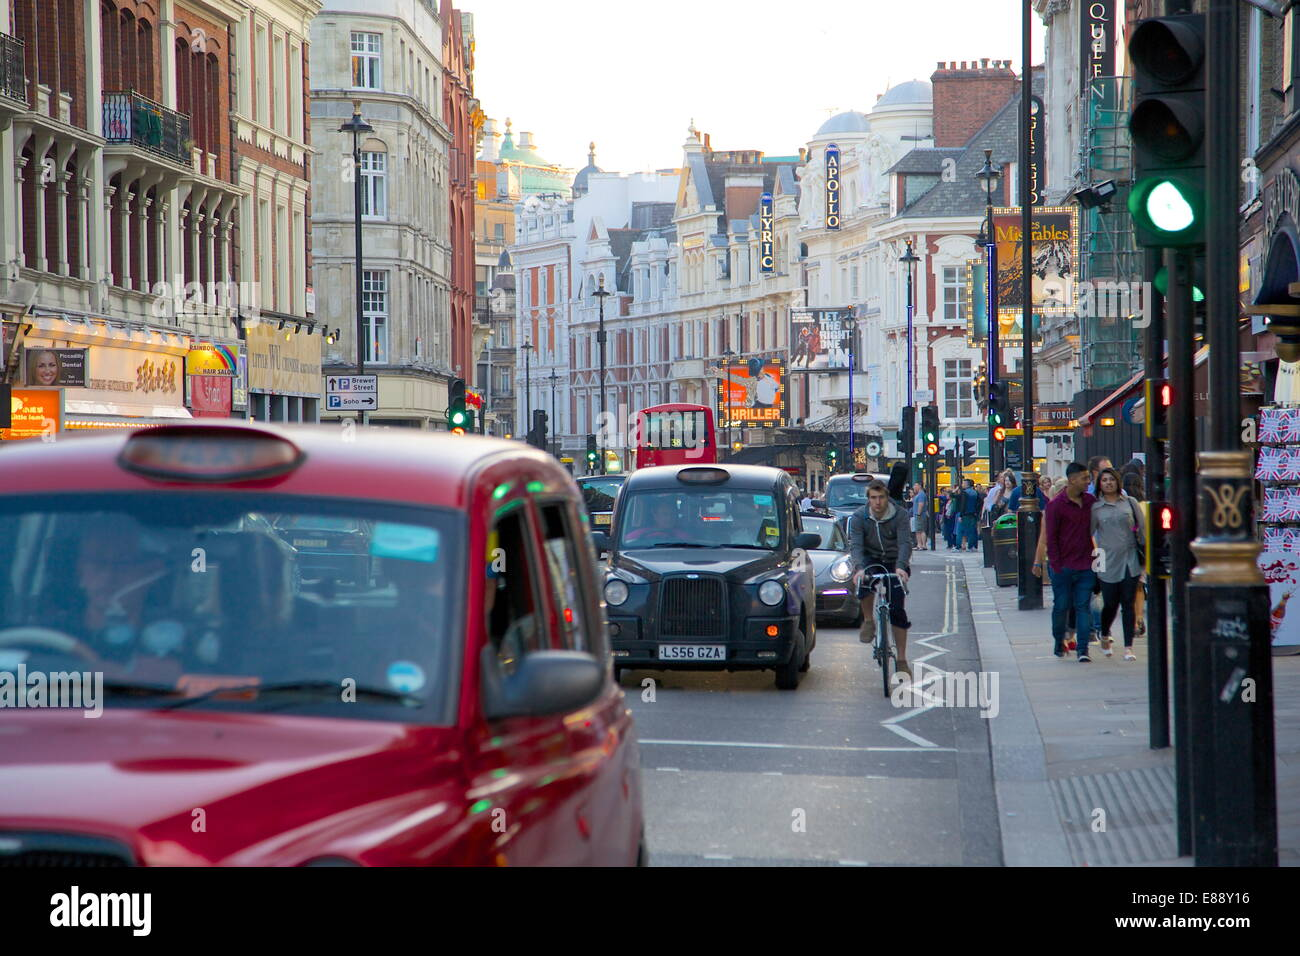 Shaftesbury Avenue, London, England, United Kingdom, Europe - Stock Image